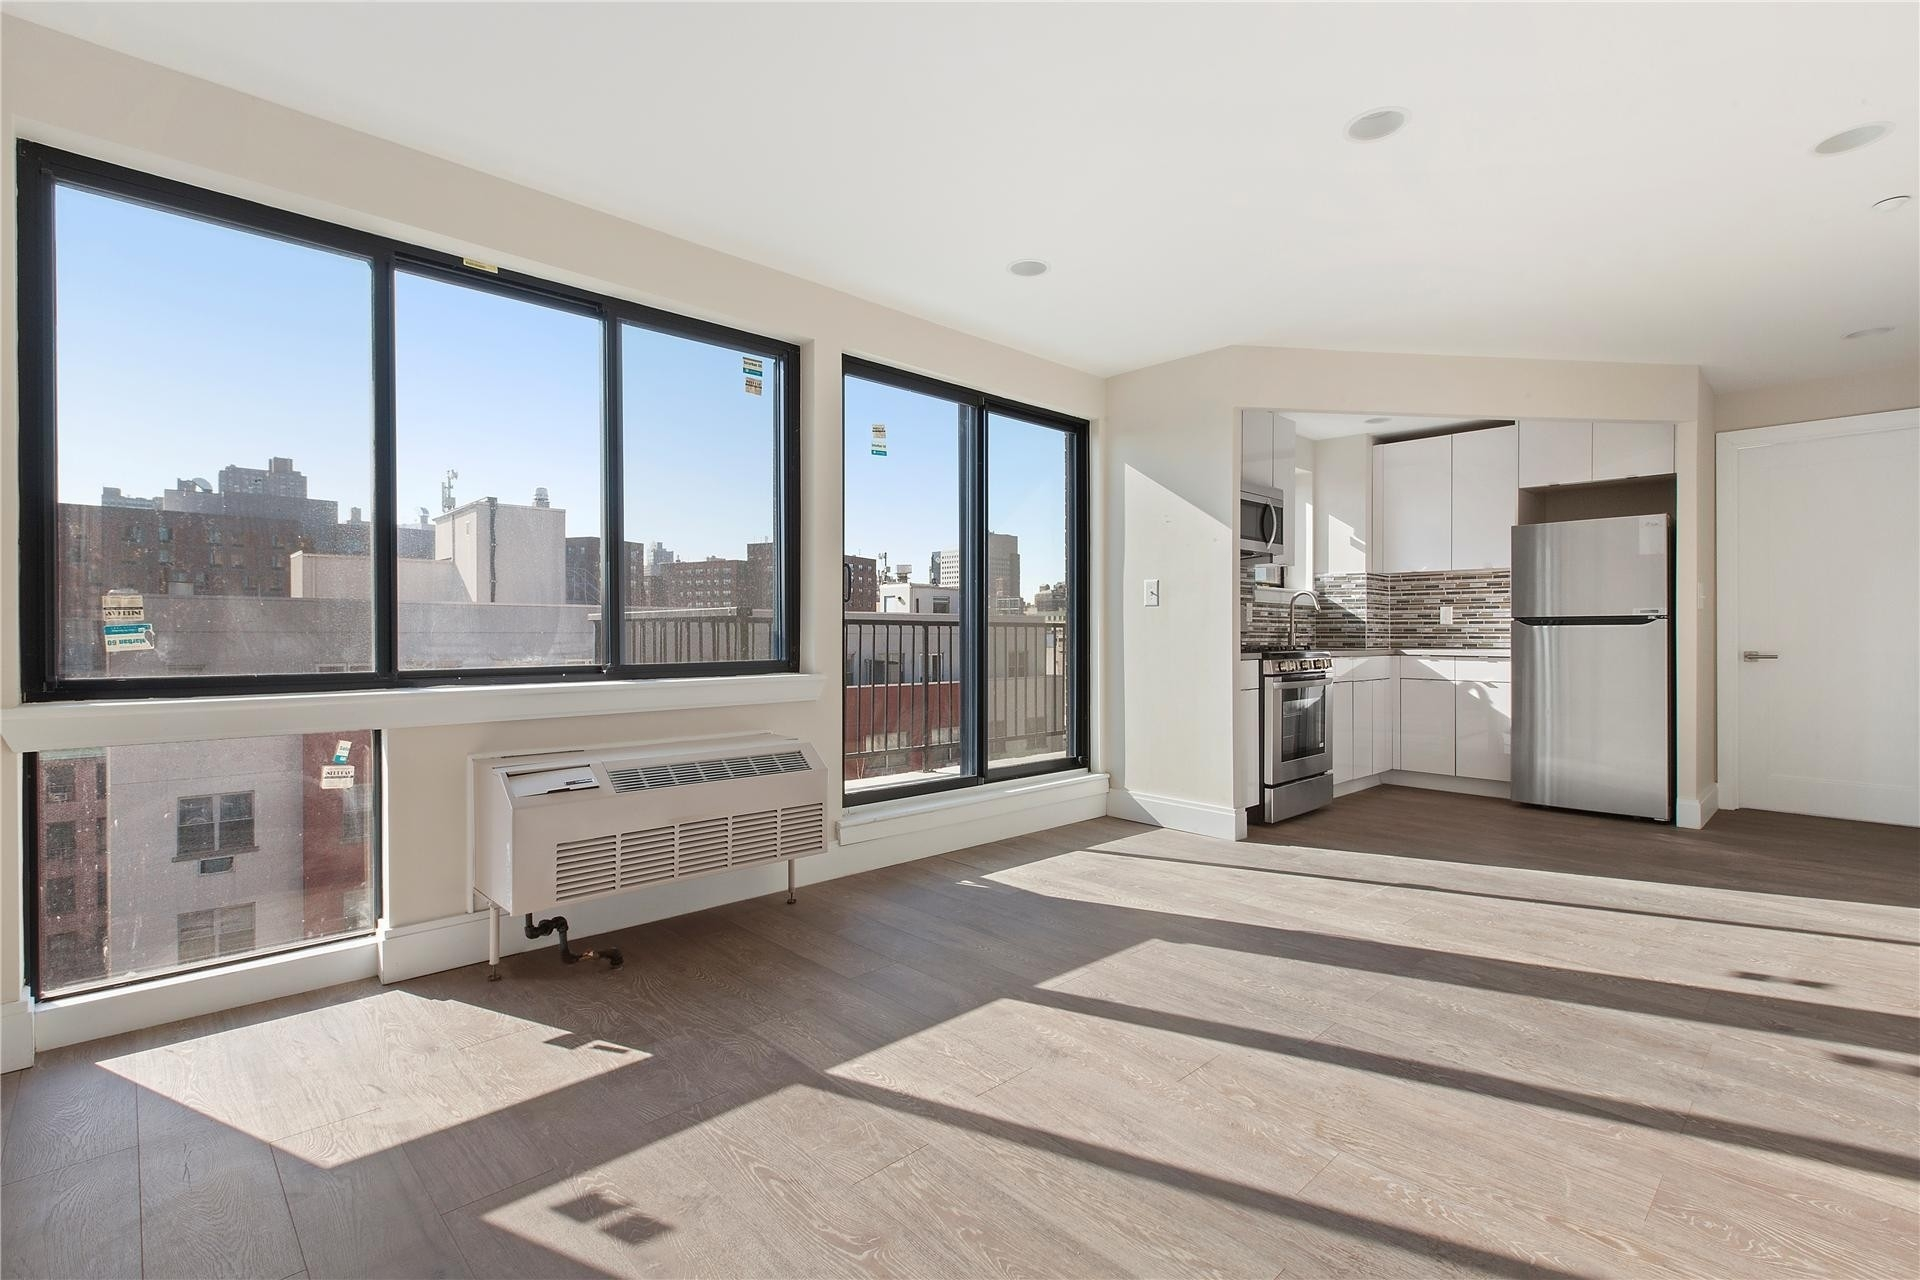 Property en 238 East 106th St, 7A New York